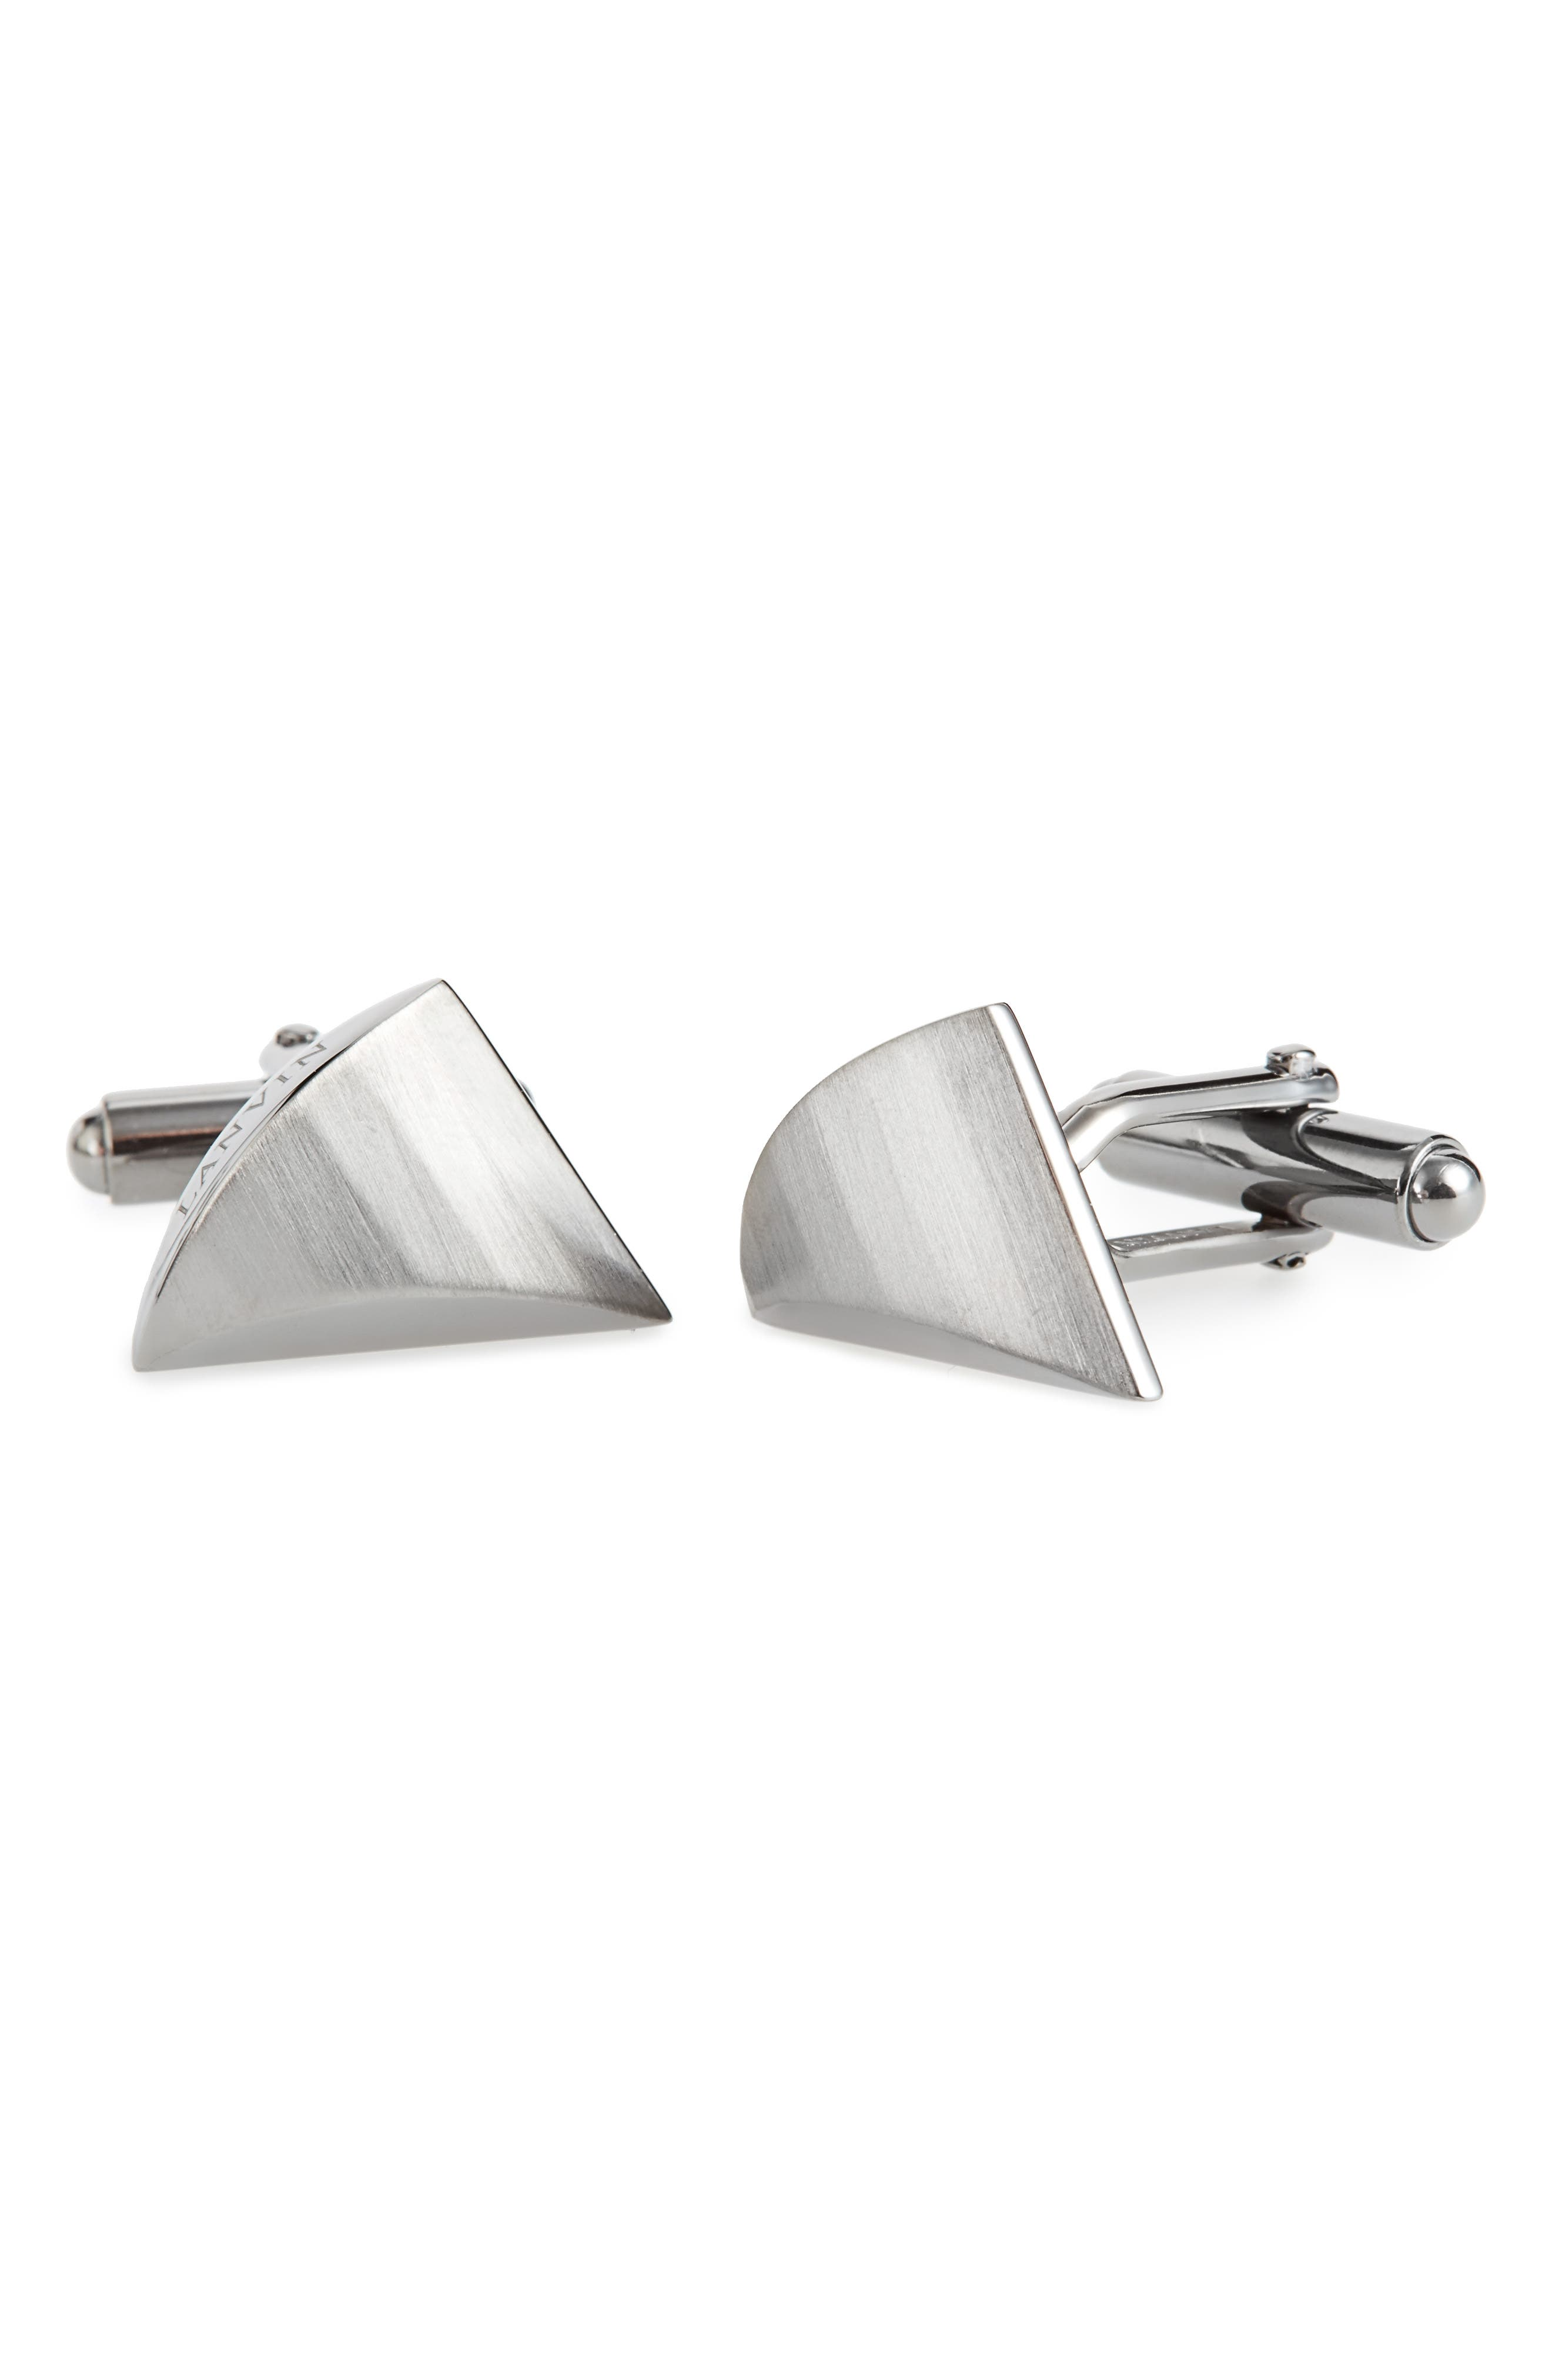 Faux Shark Tooth Cuff Links,                             Main thumbnail 1, color,                             SILVER